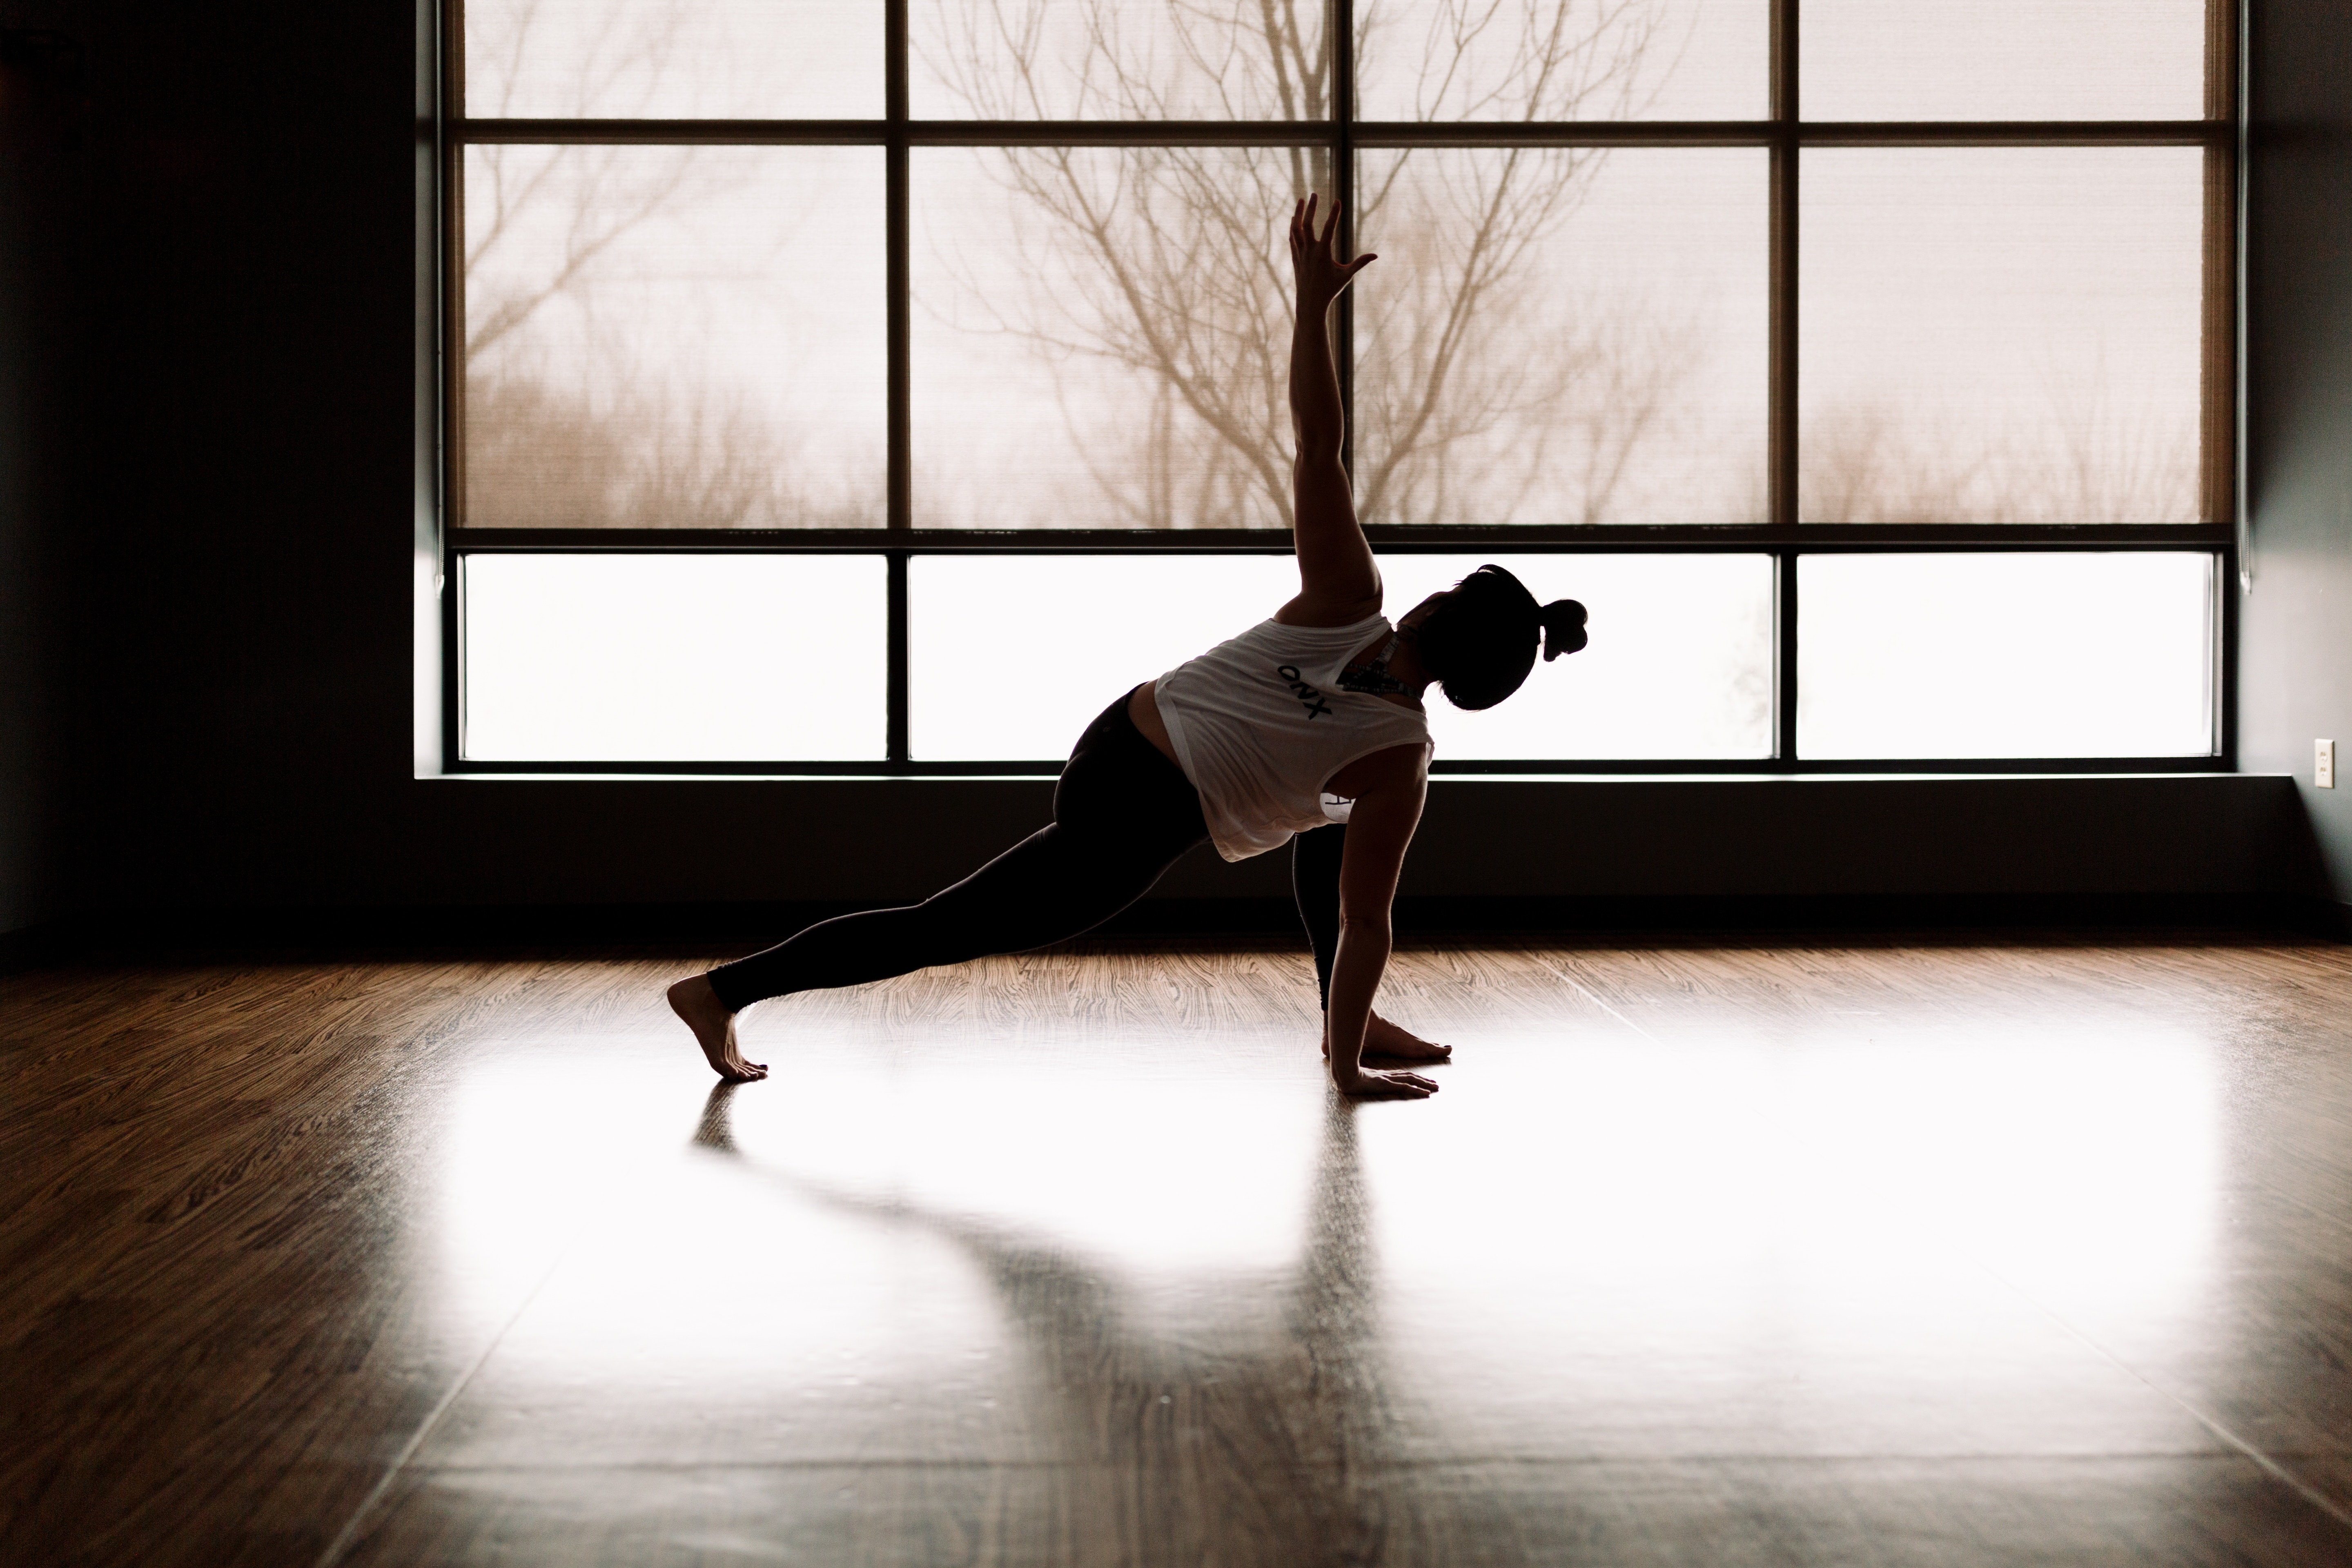 Calling all yogis. Have you considered opening a yoga studio? In this blog, we've listed everything you need to make it happen.